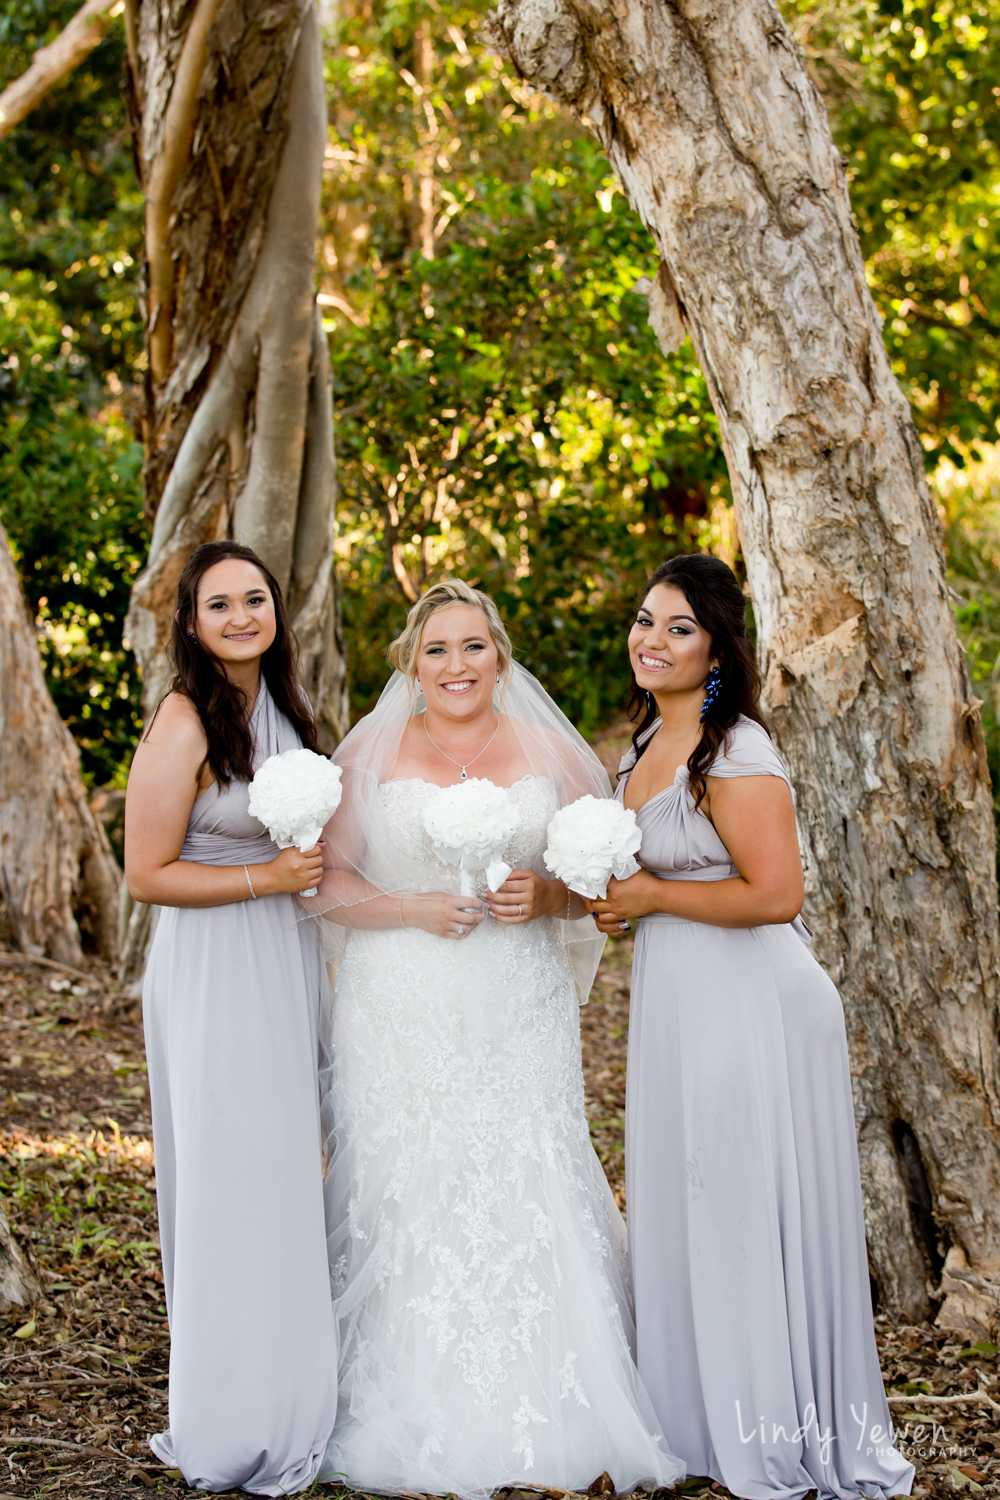 Bribie-Island-wedding-photographer-Chloe-Adam 392.jpg